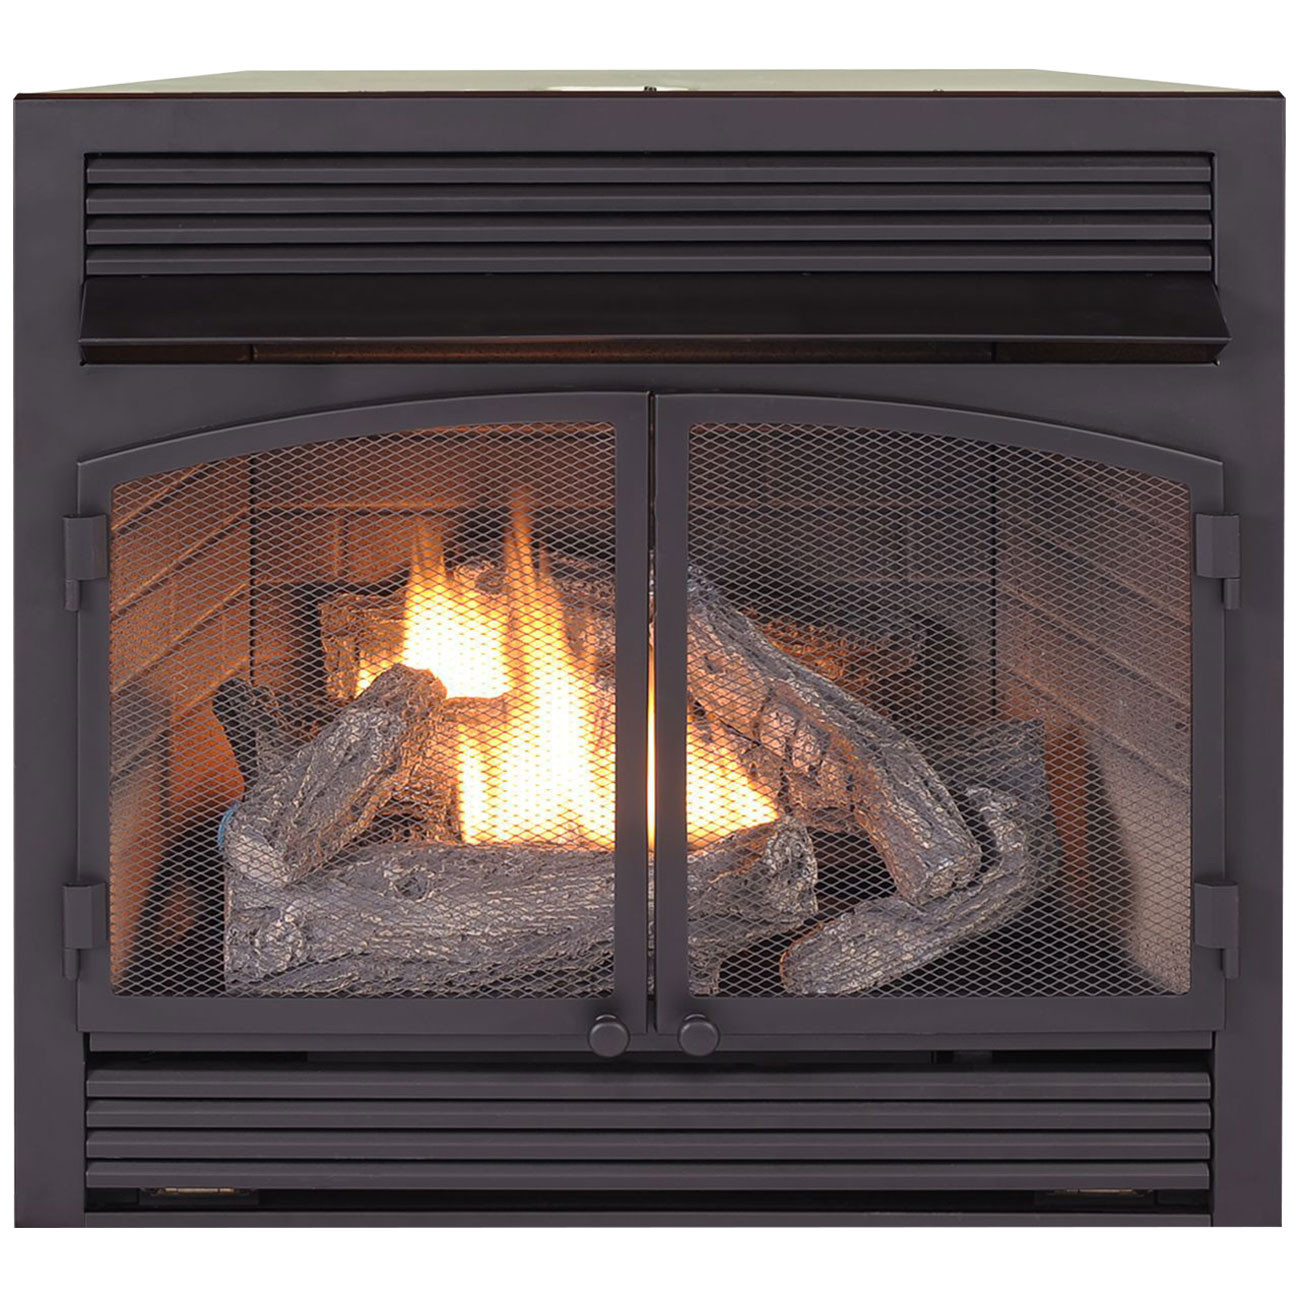 Best ideas about Propane Fireplace Inserts . Save or Pin Dual Fuel Fireplace Insert Zero Clearance 32 000 BTU Now.